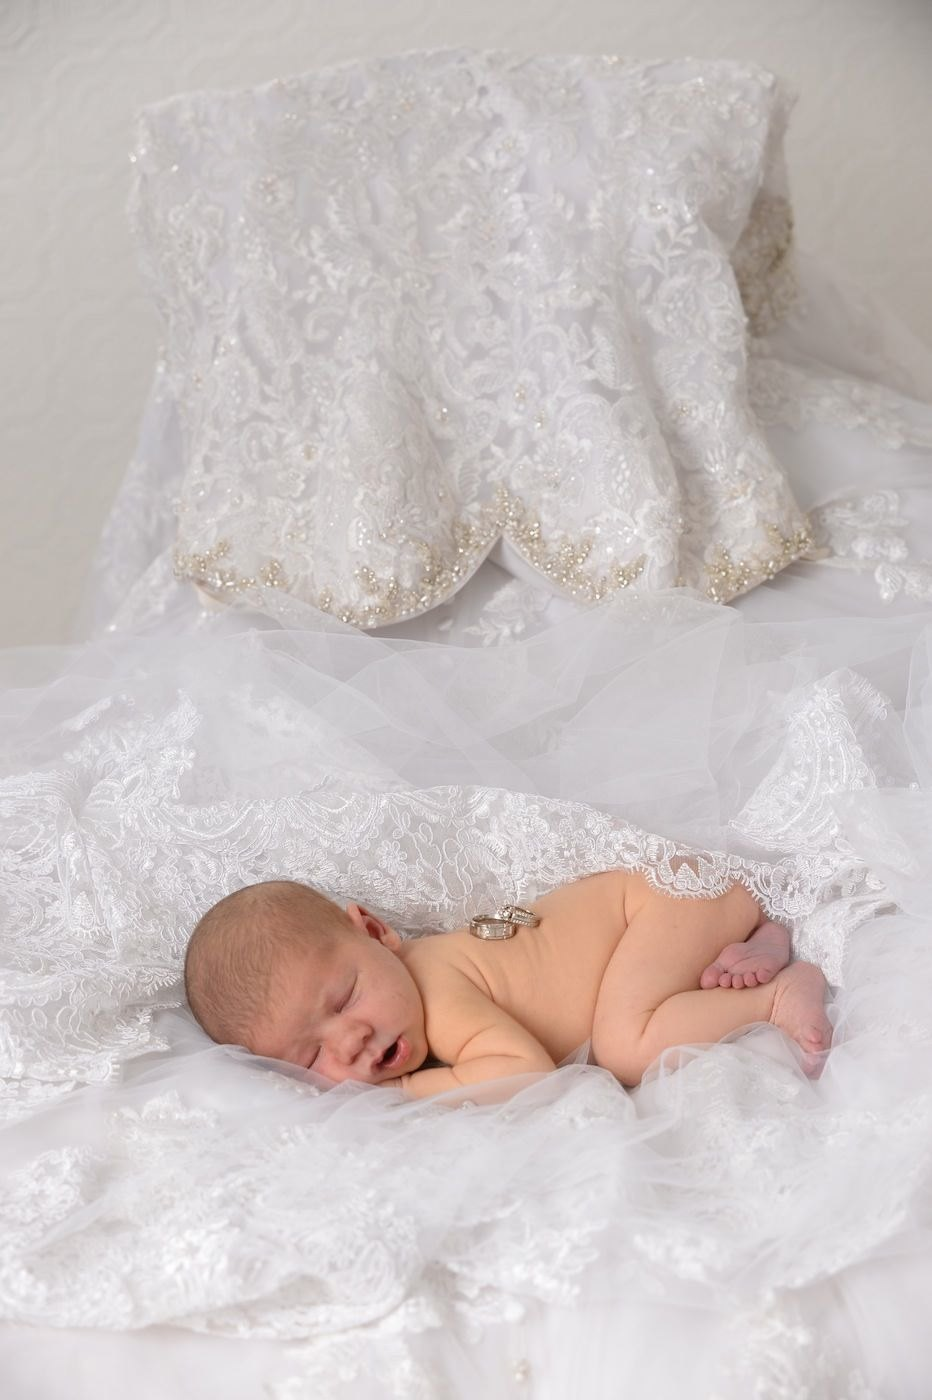 new baby with wedding dress